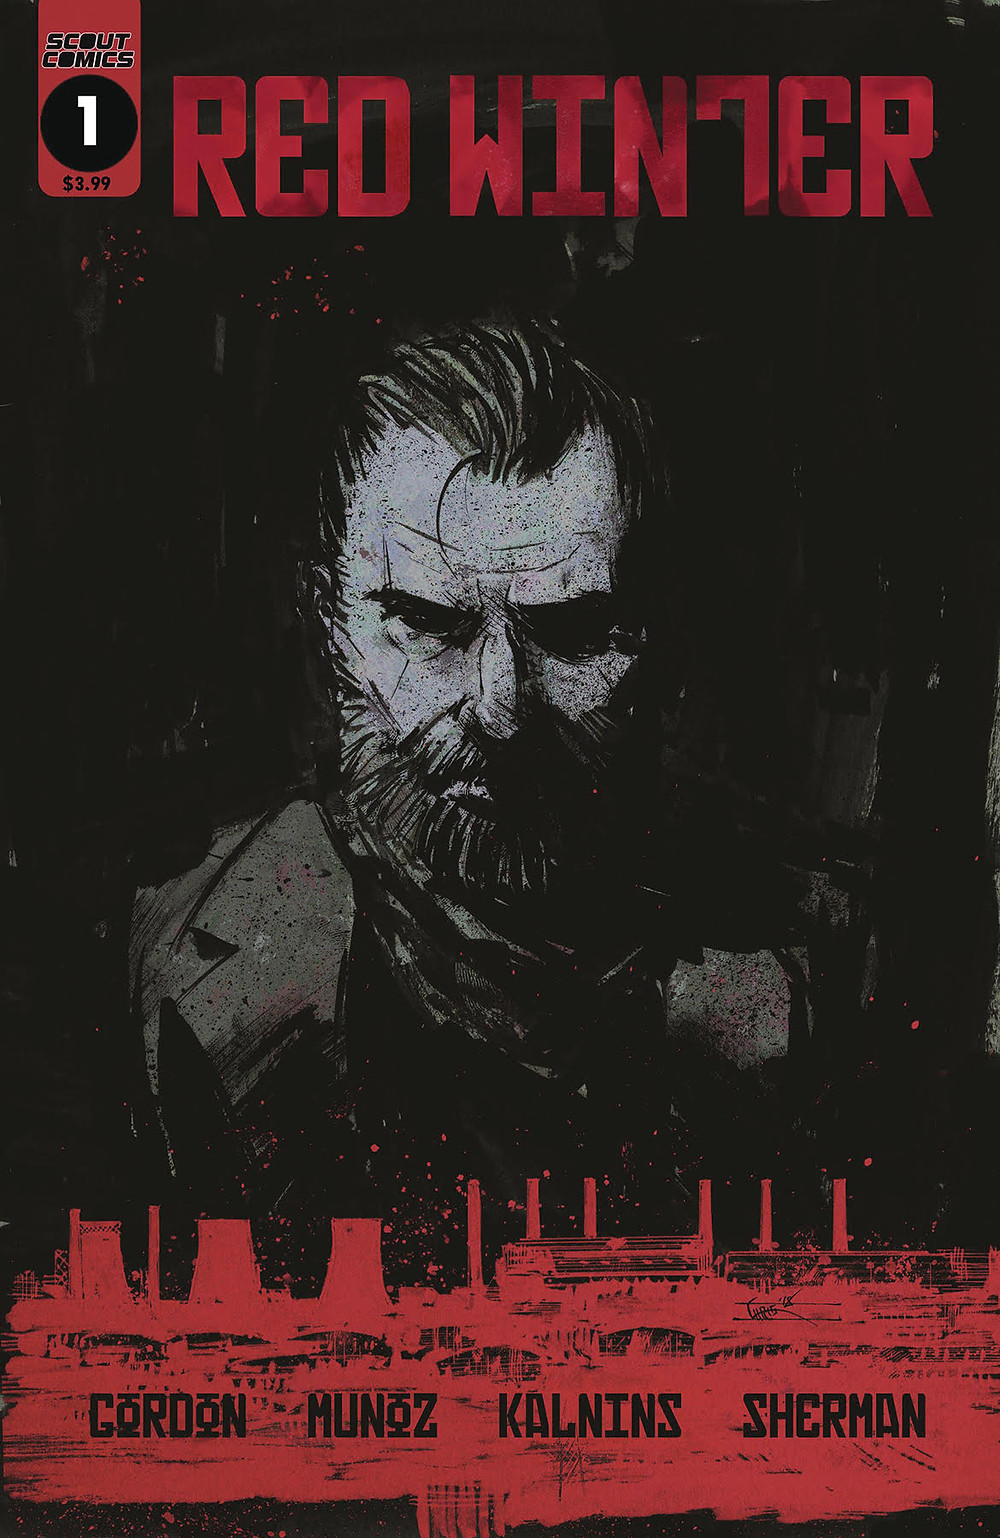 Red Winter, issue #1, cover by Chris Shehan, Scout Comics, Gordon/Munoz